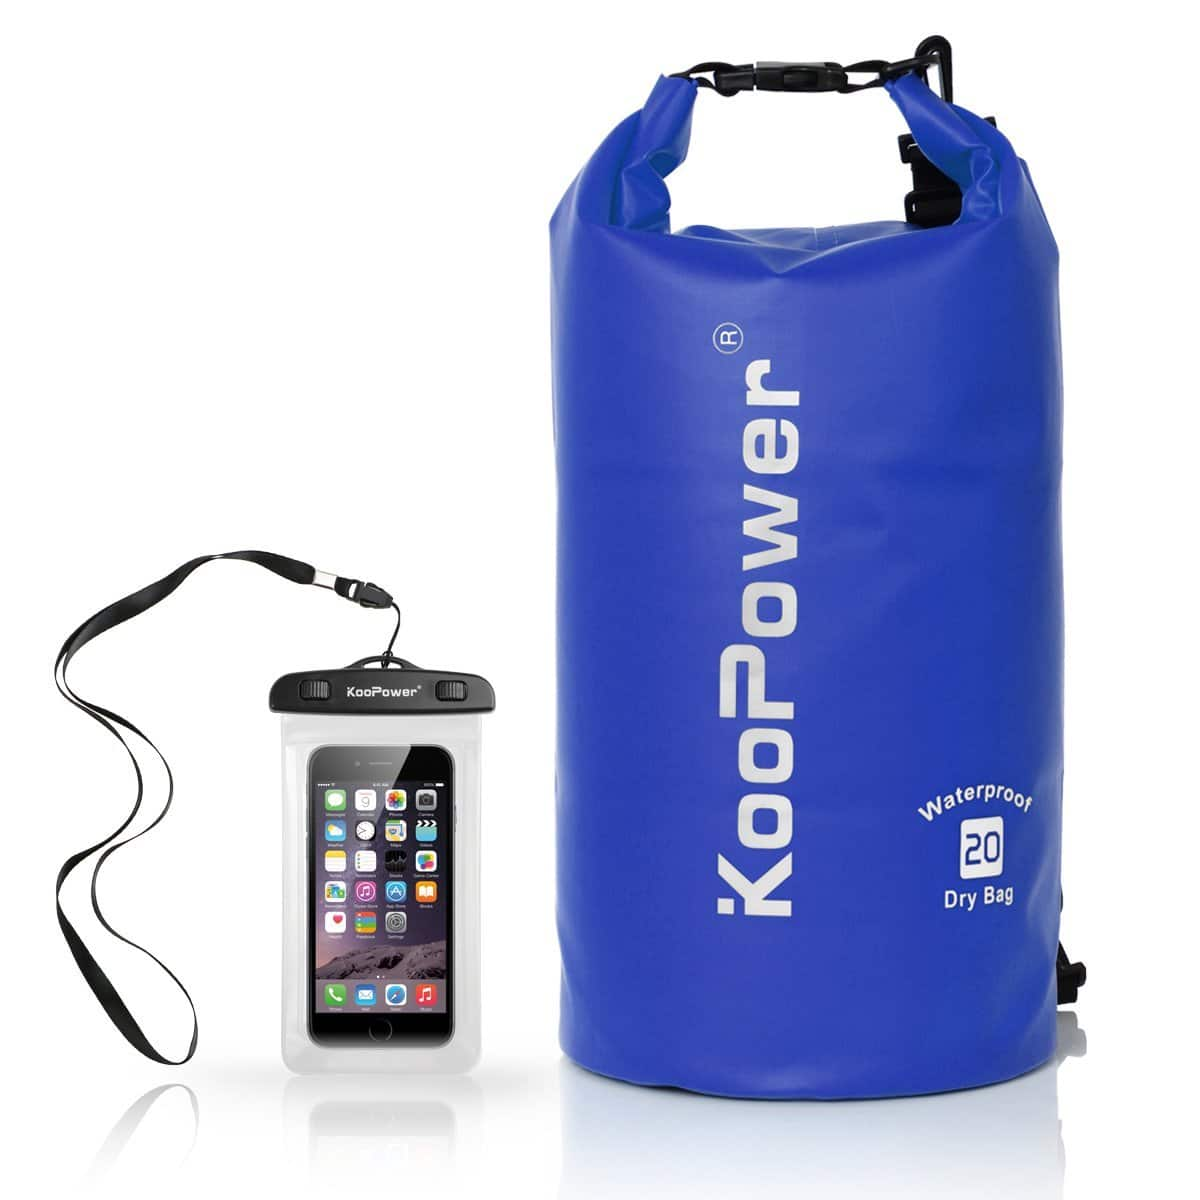 20L Waterproof Drybag - BLUE - for $3.89 after coupon: Z3H6Y3FF @Amazon